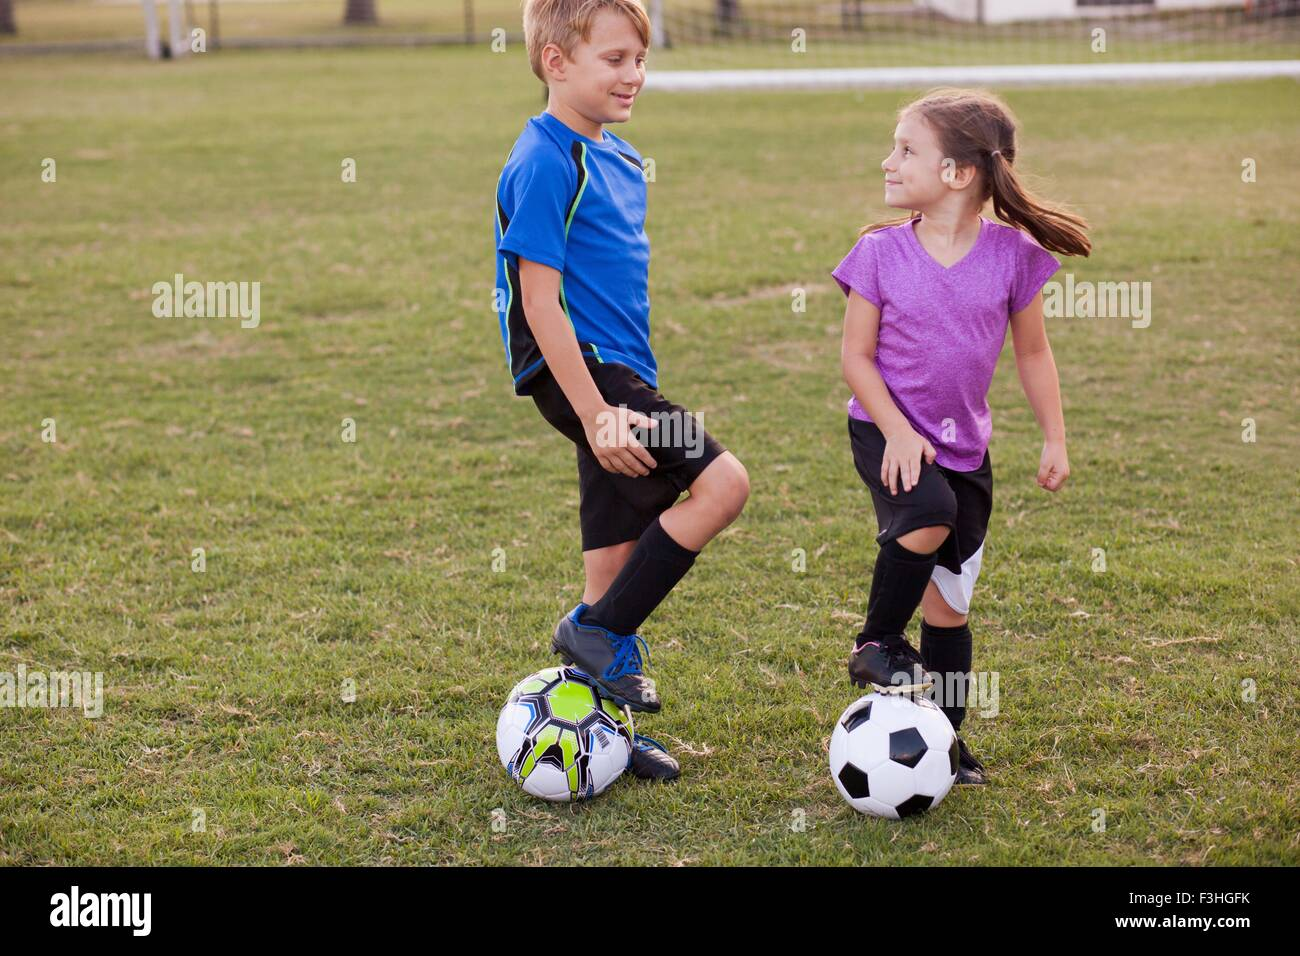 Boy and younger sister with footballs on practice pitch - Stock Image